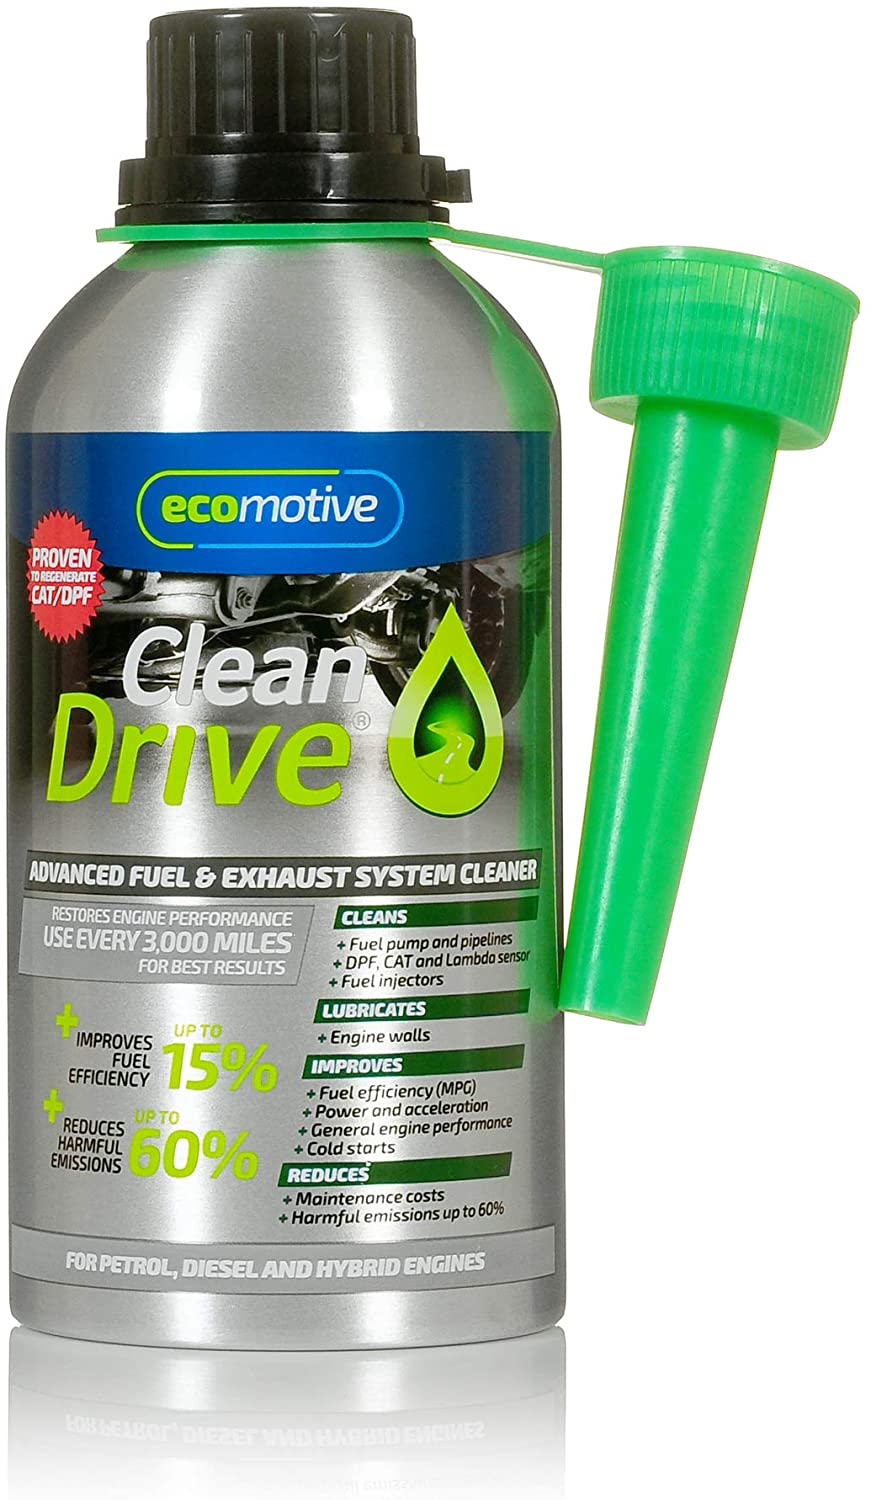 Clean Drive Fuel Additive